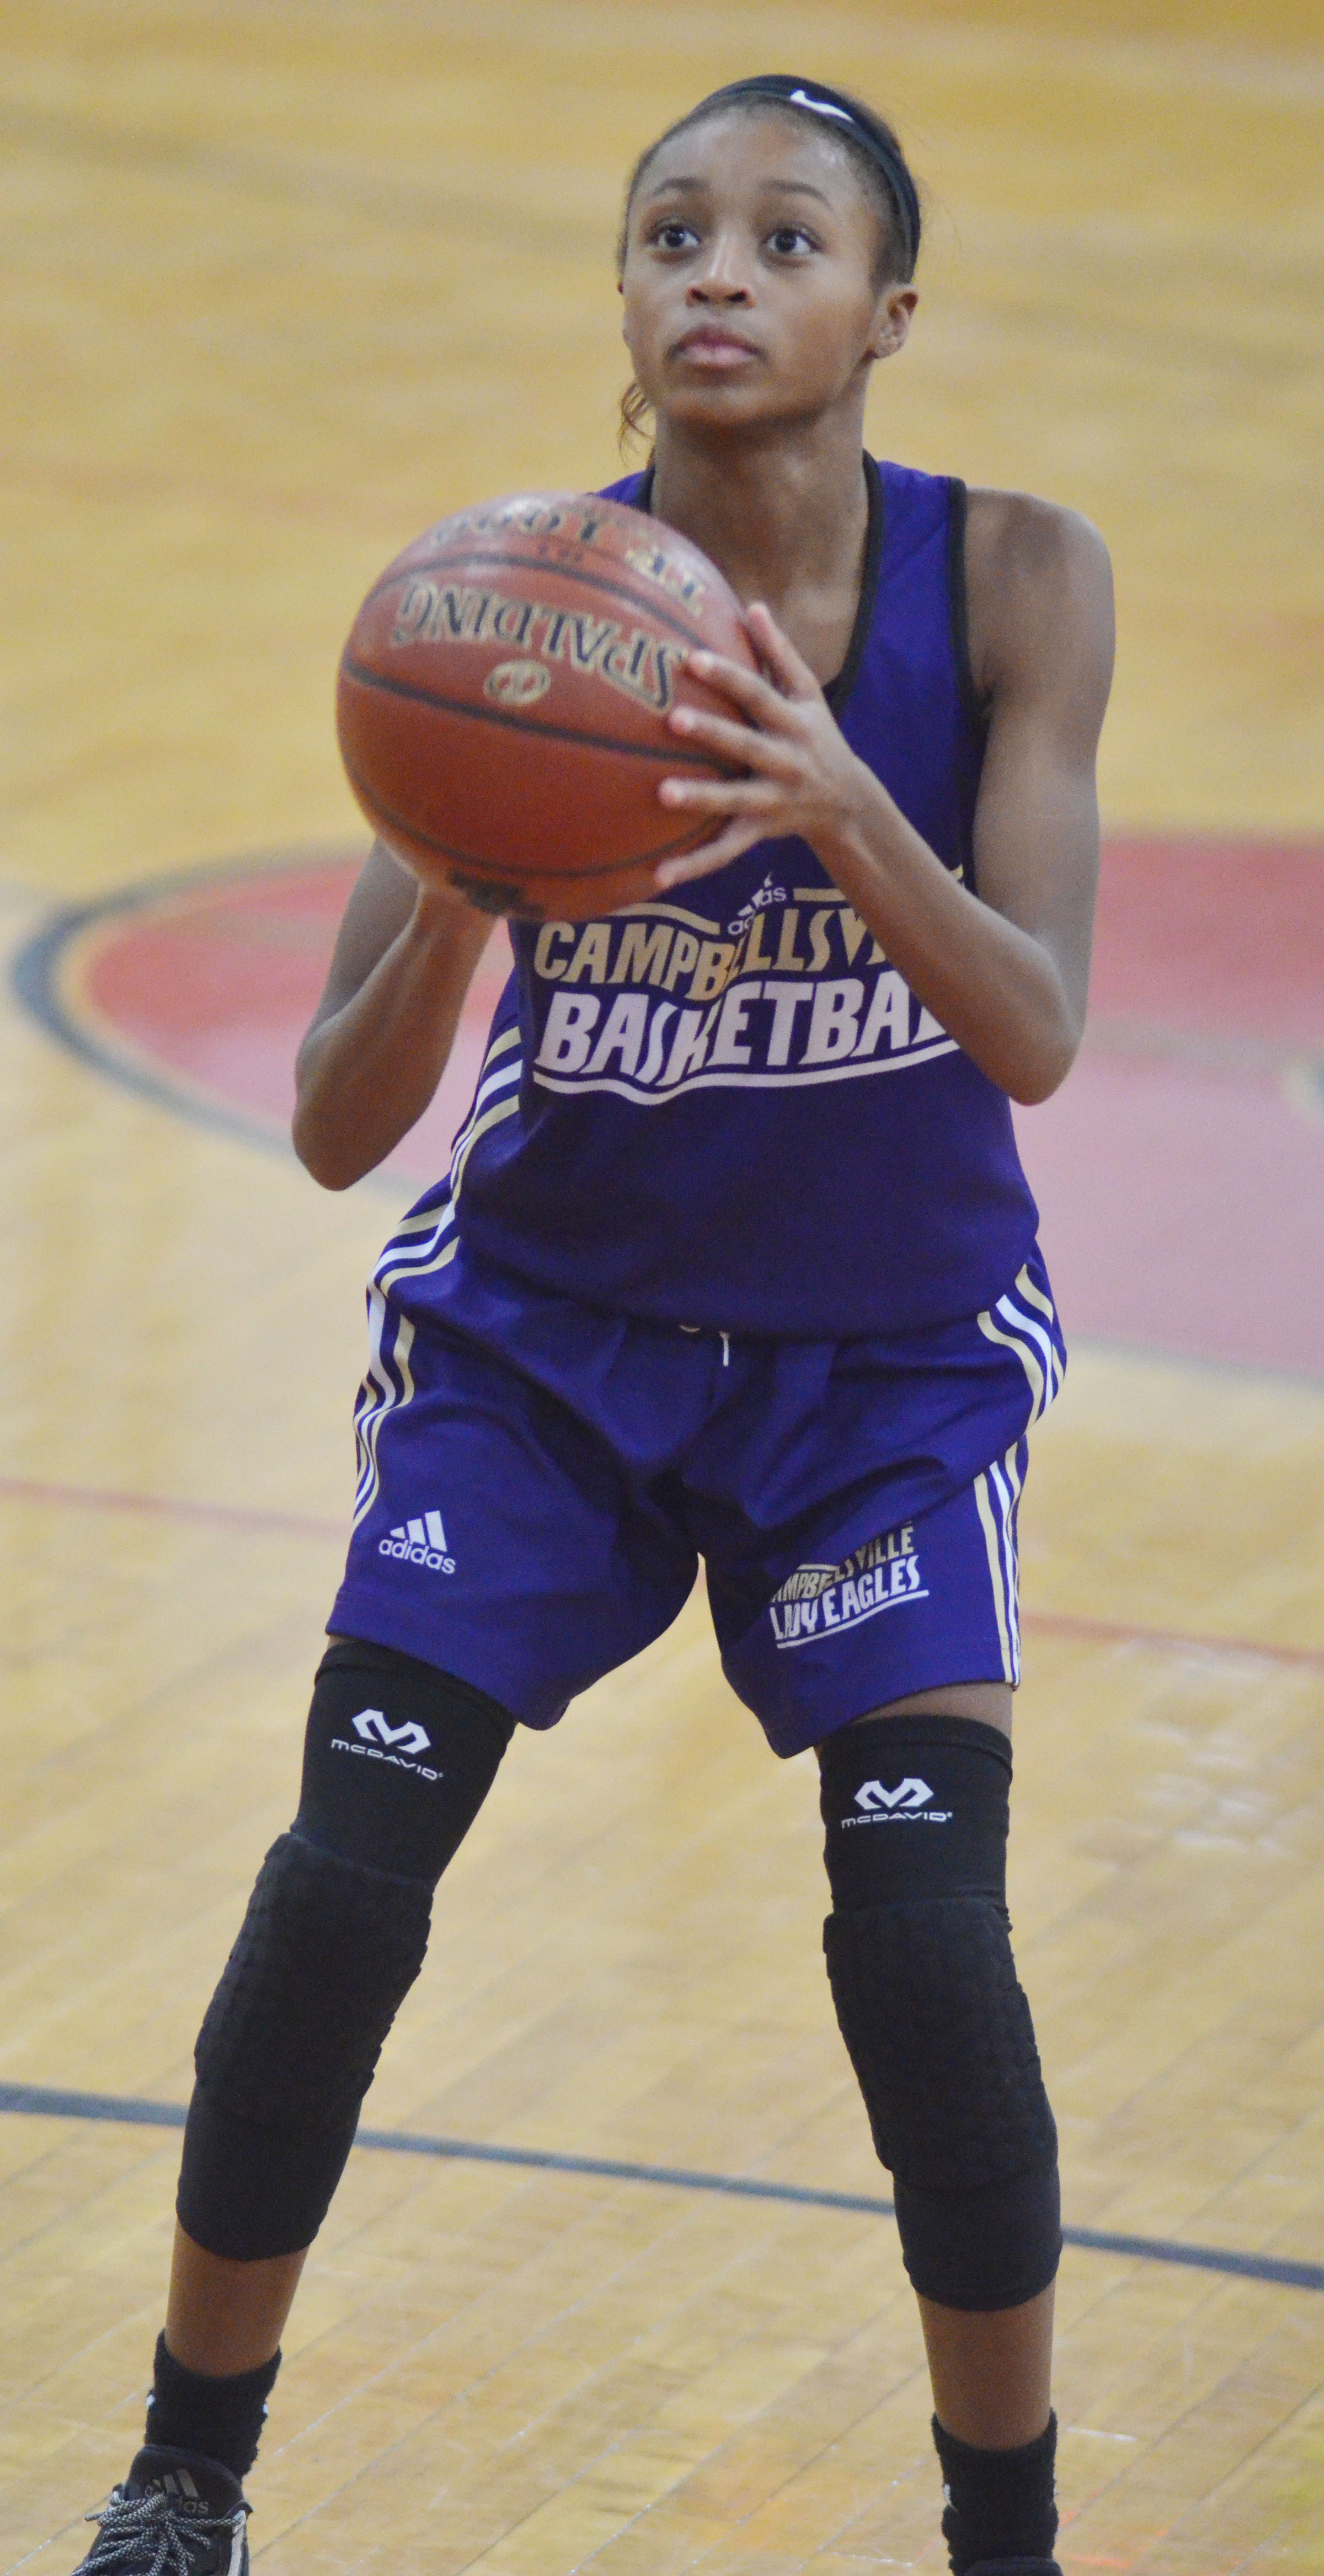 Campbellsville Middle School seventh-grader Bri Gowdy shoots.